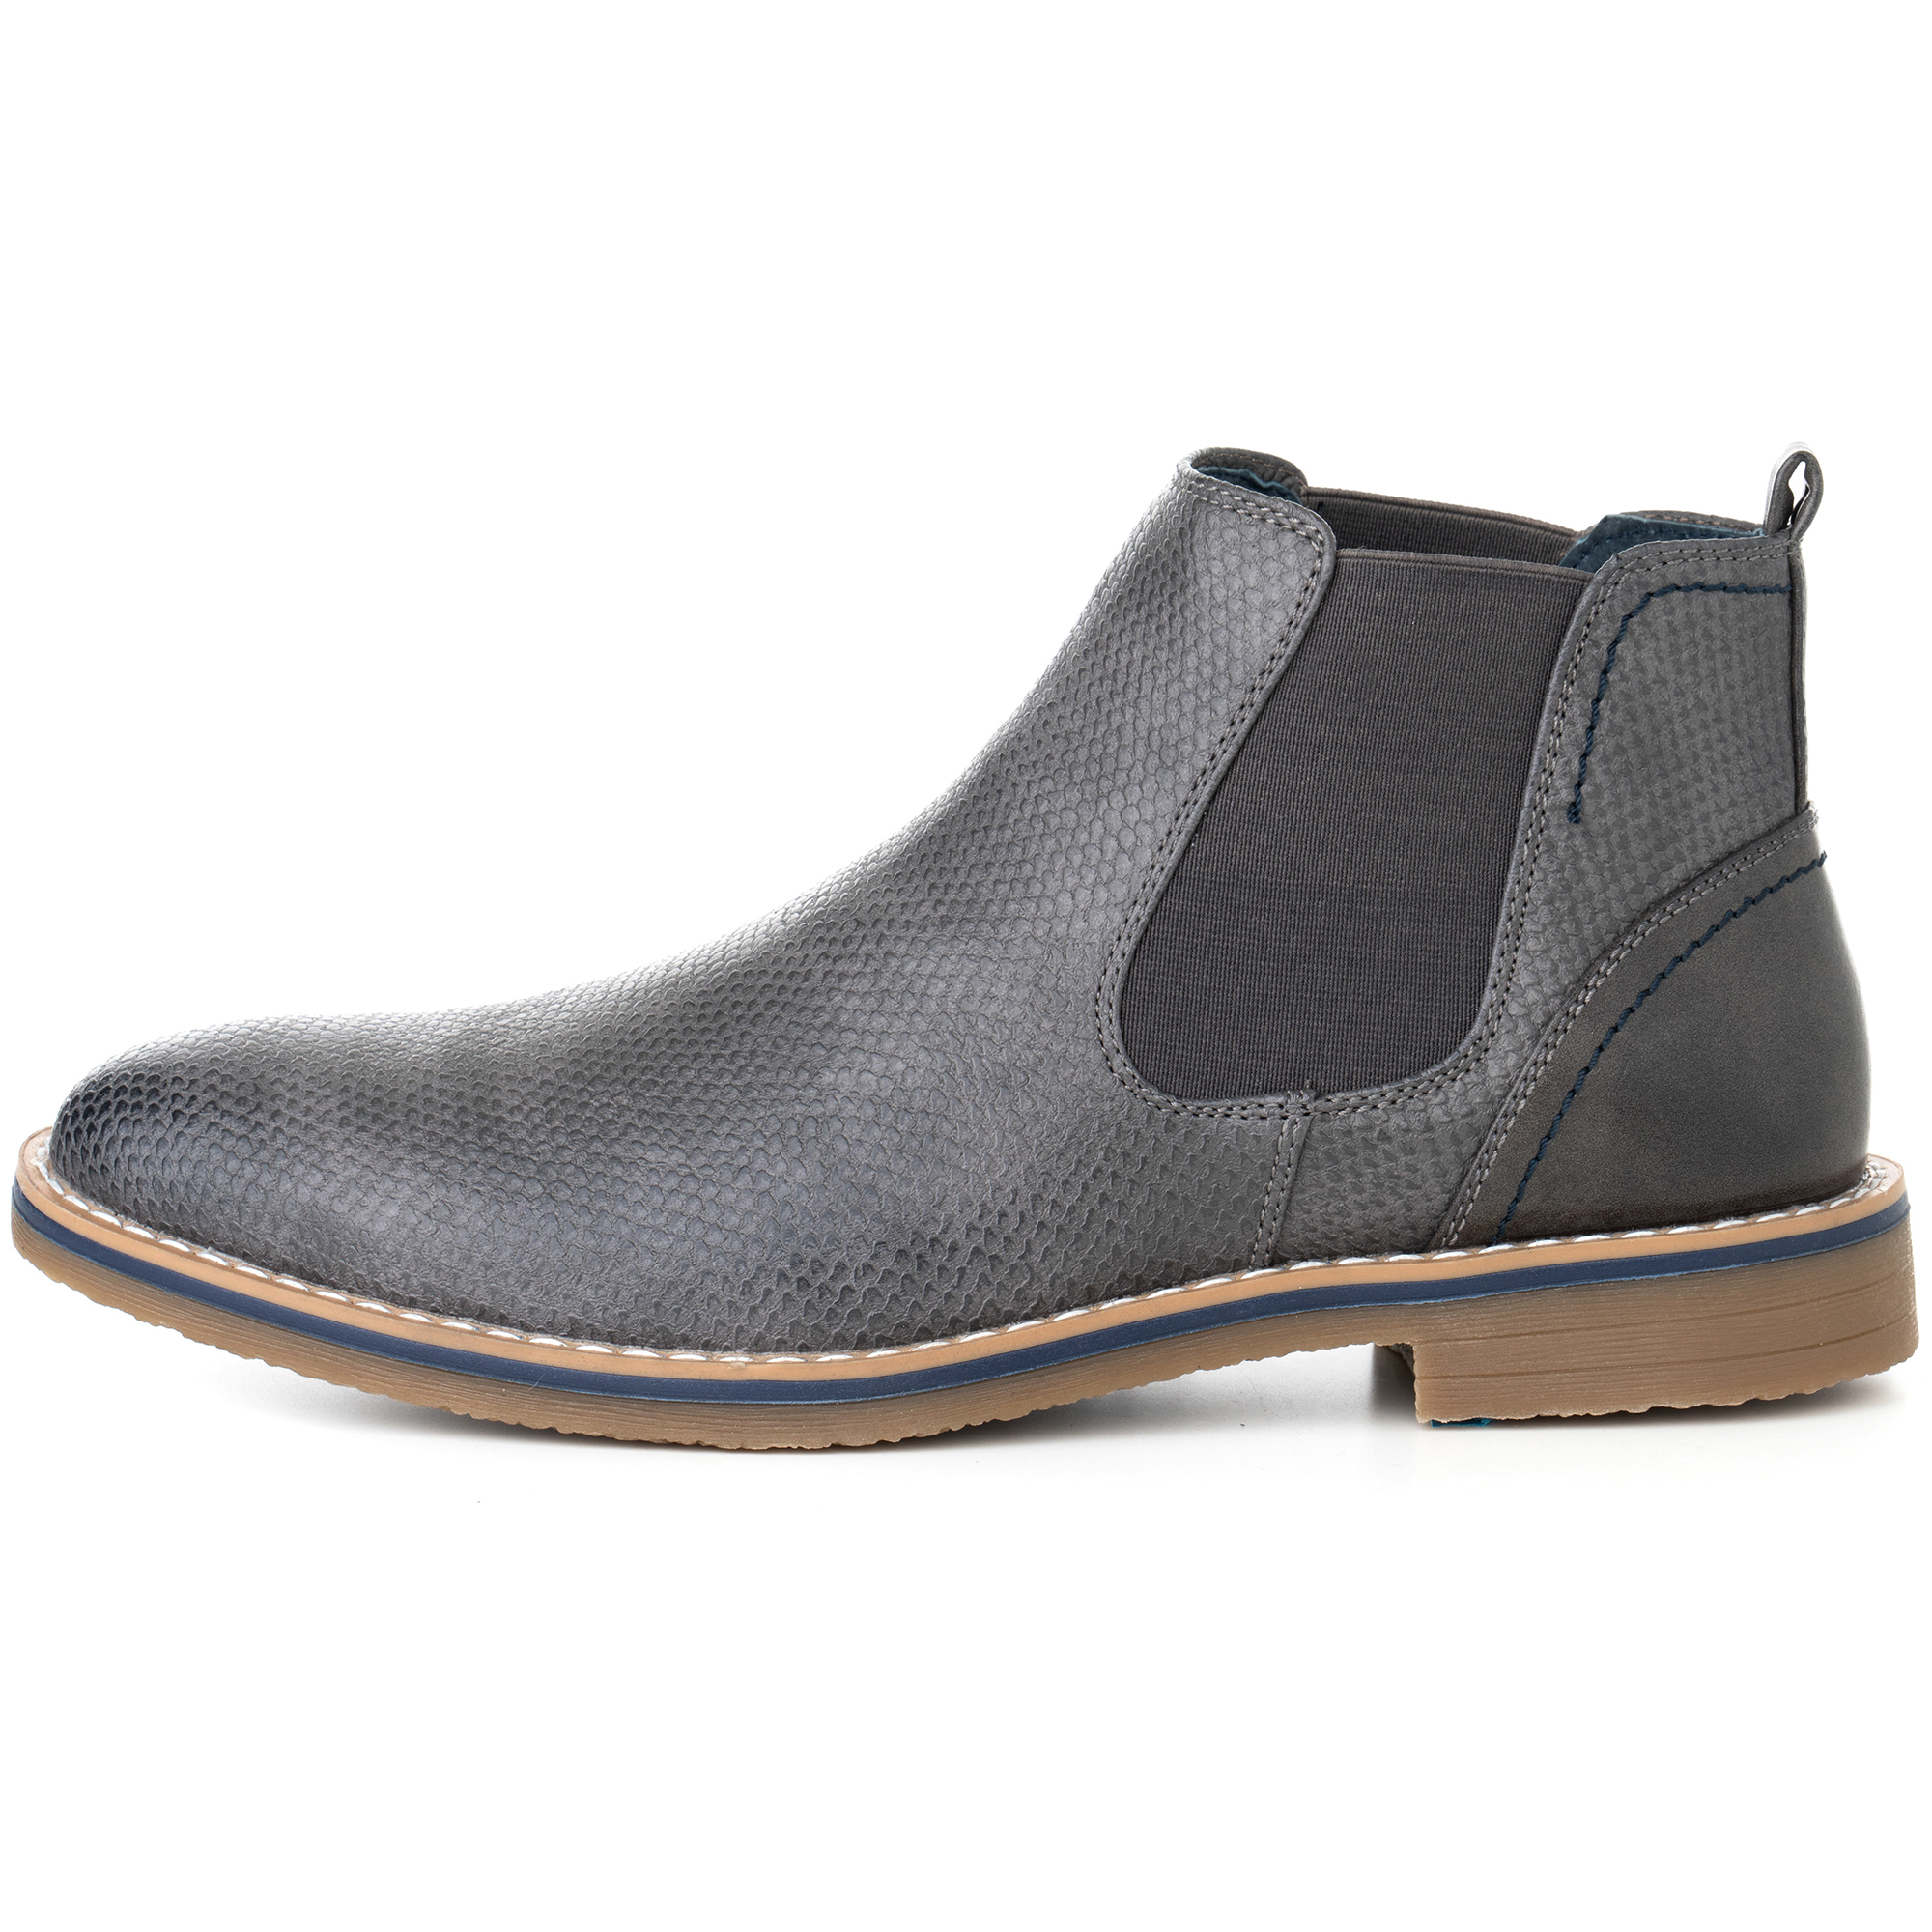 Alpine-Swiss-Mens-Nash-Chelsea-Boots-Snakeskin-Ankle-Boot-Genuine-Leather-Lined miniature 26